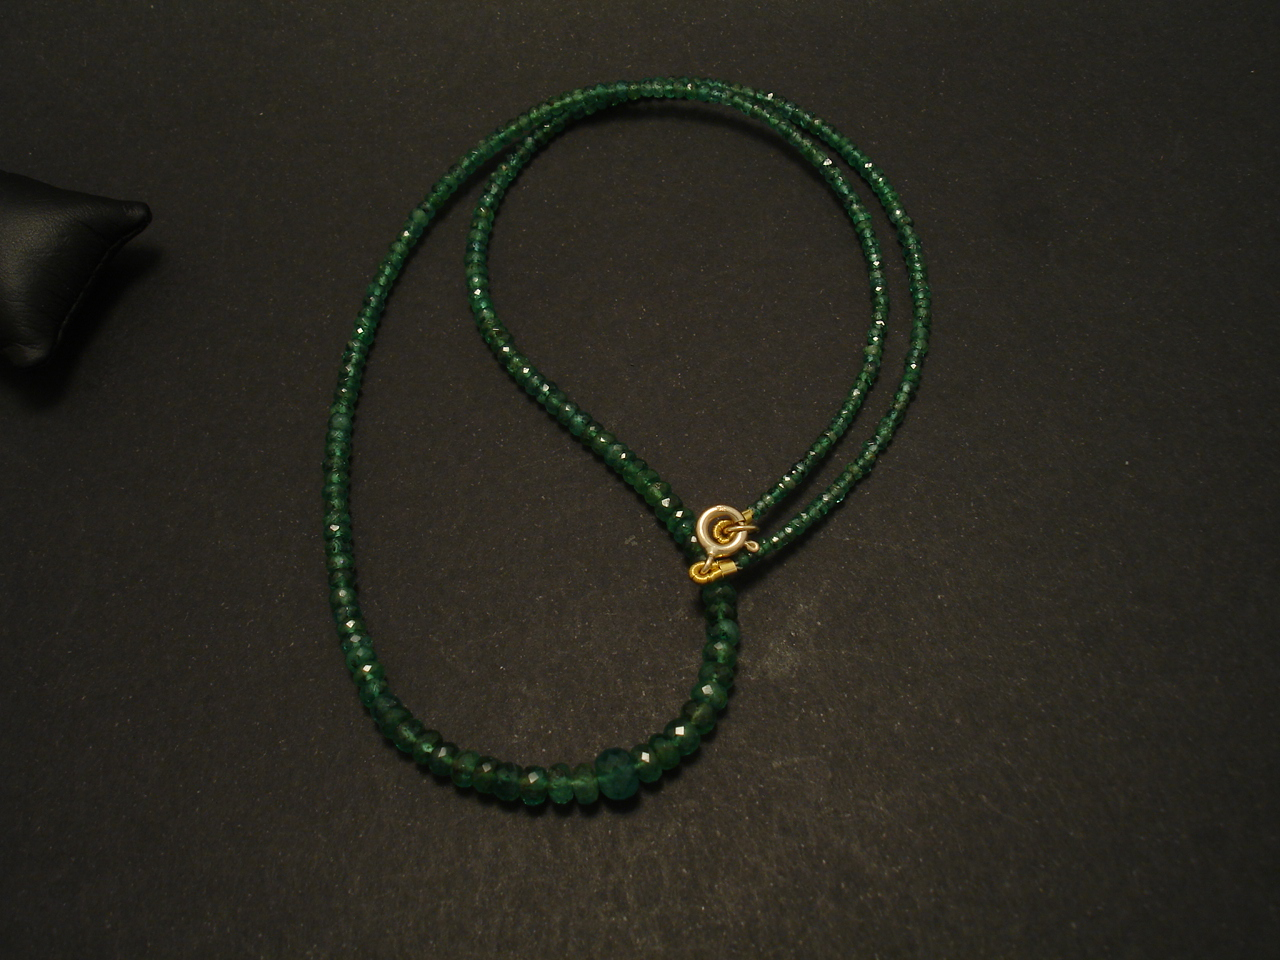 Cut Emerald Bead Necklace, Gold Finish - Christopher William Sydney  Australia - Antique, ruby, coral and tribal jewellery